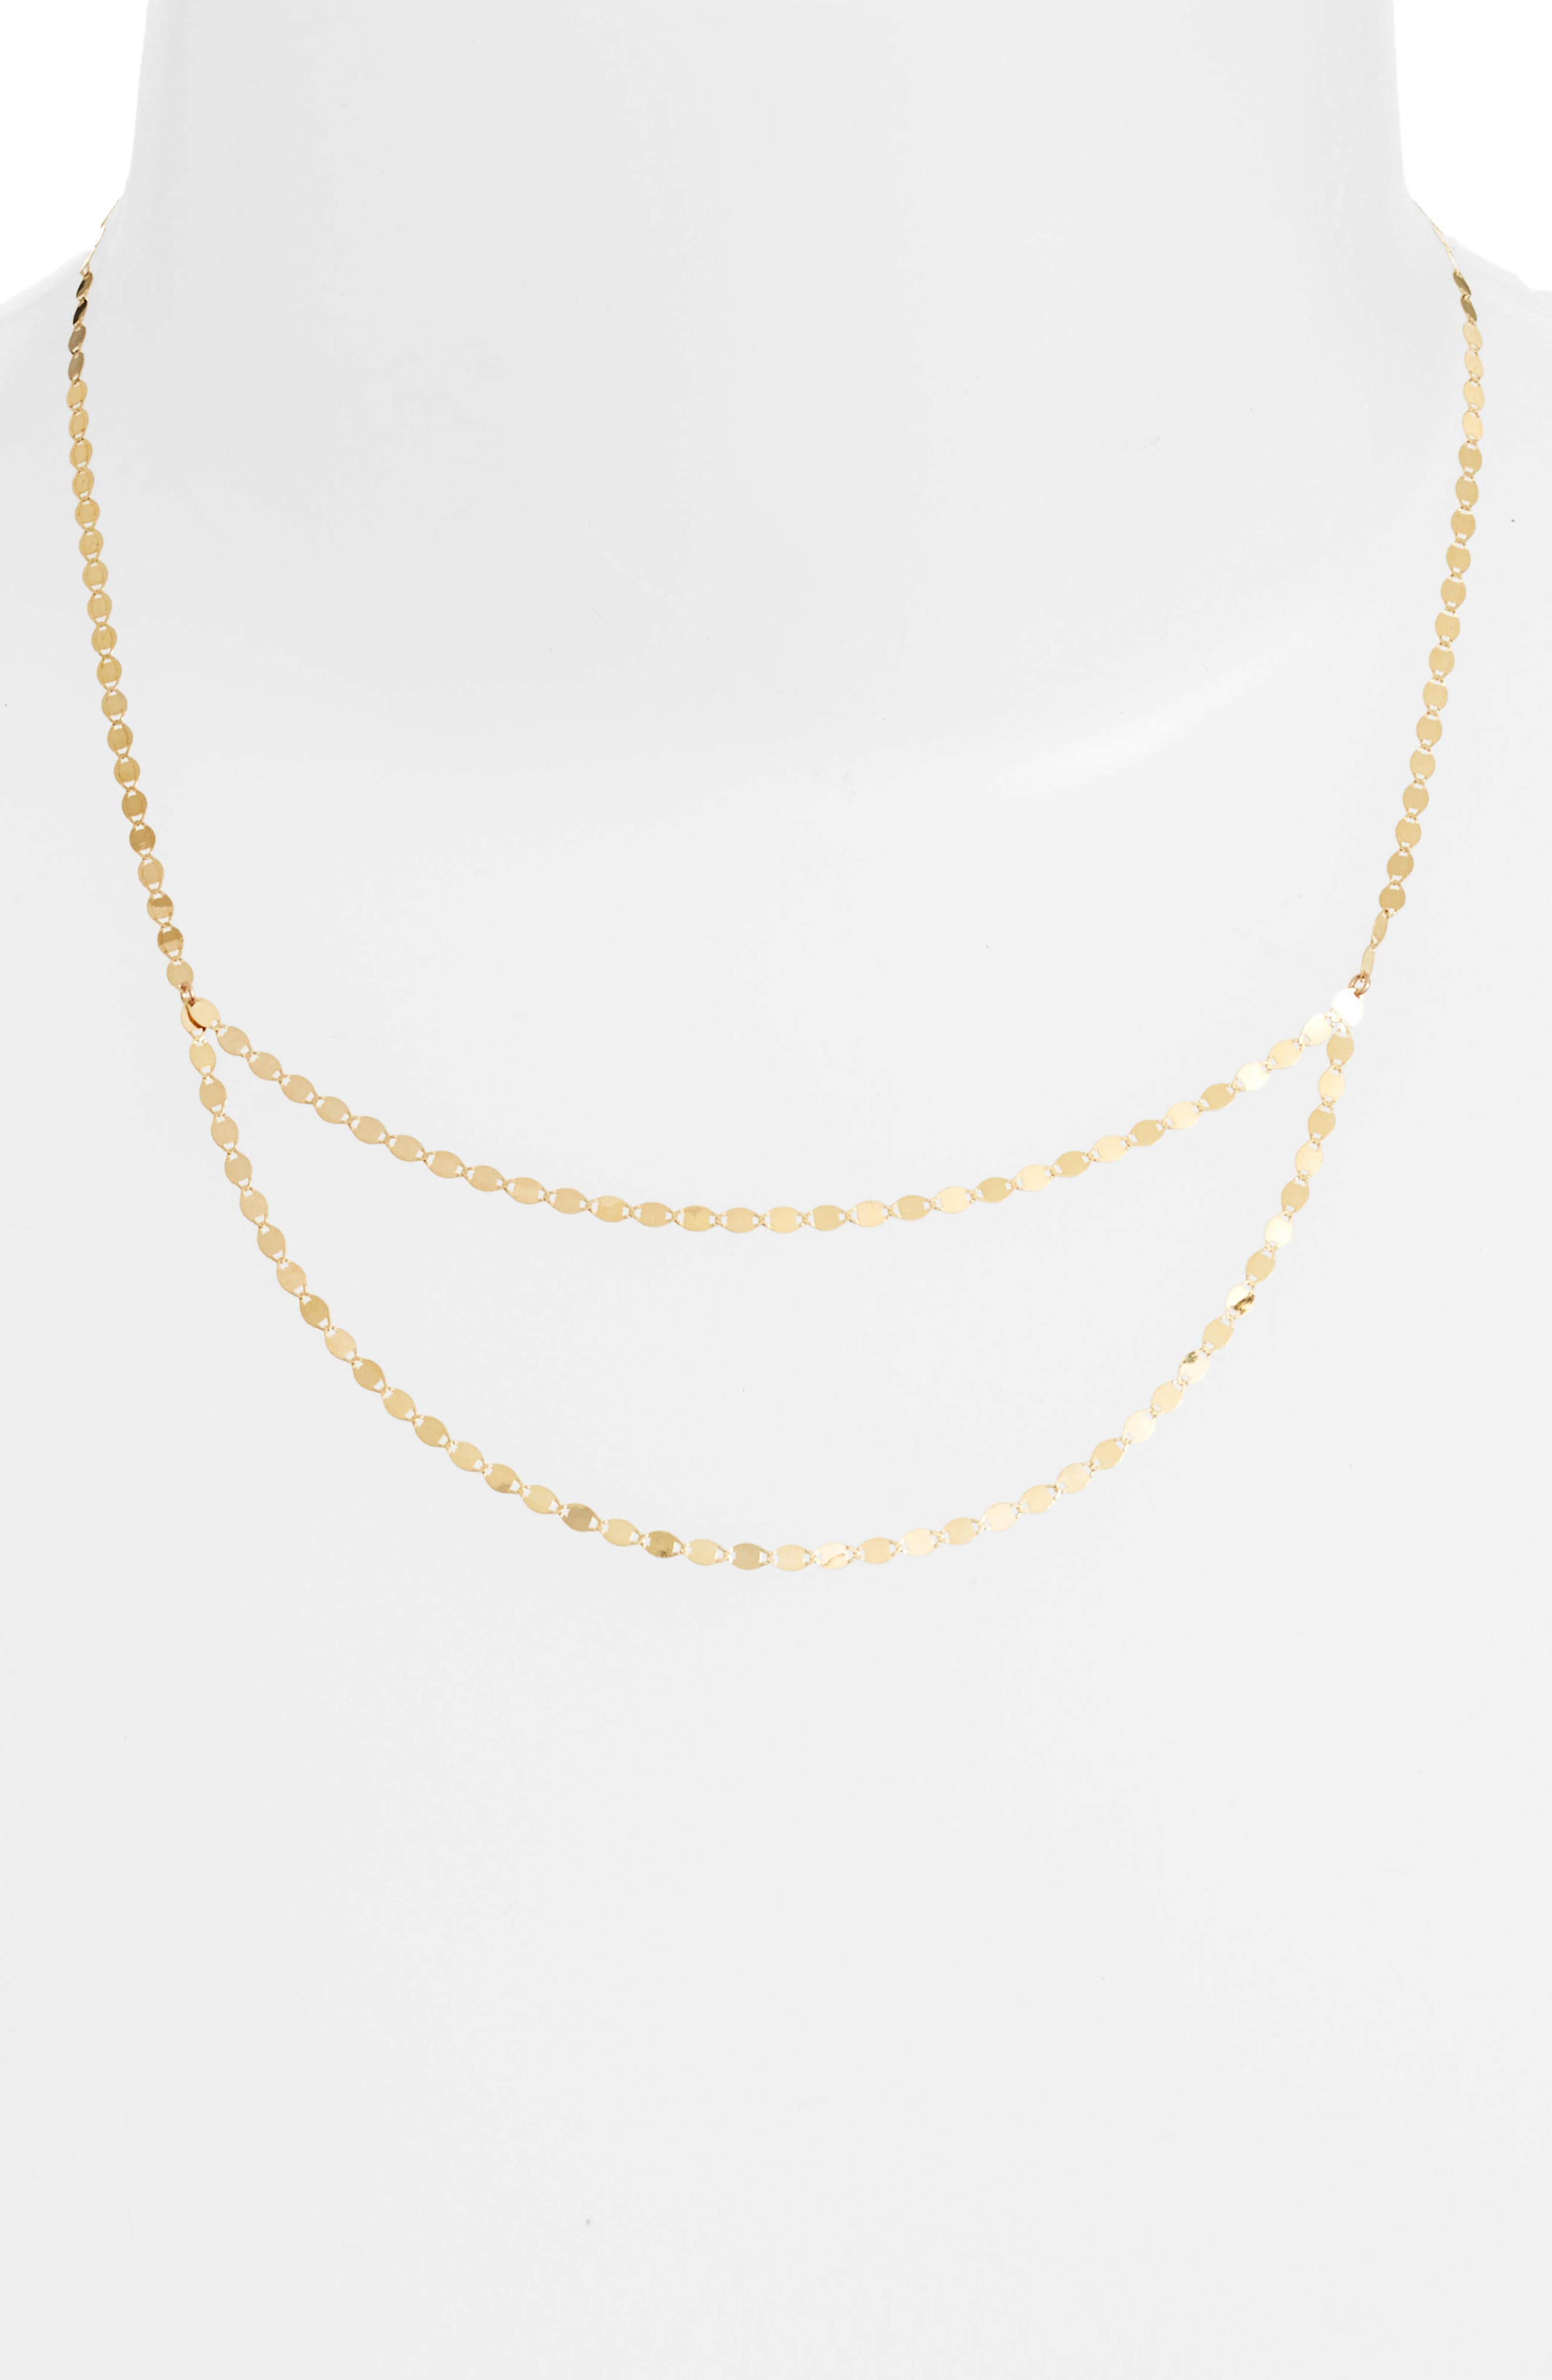 Blake Double Layer Necklace,                             Alternate thumbnail 3, color,                             YELLOW GOLD